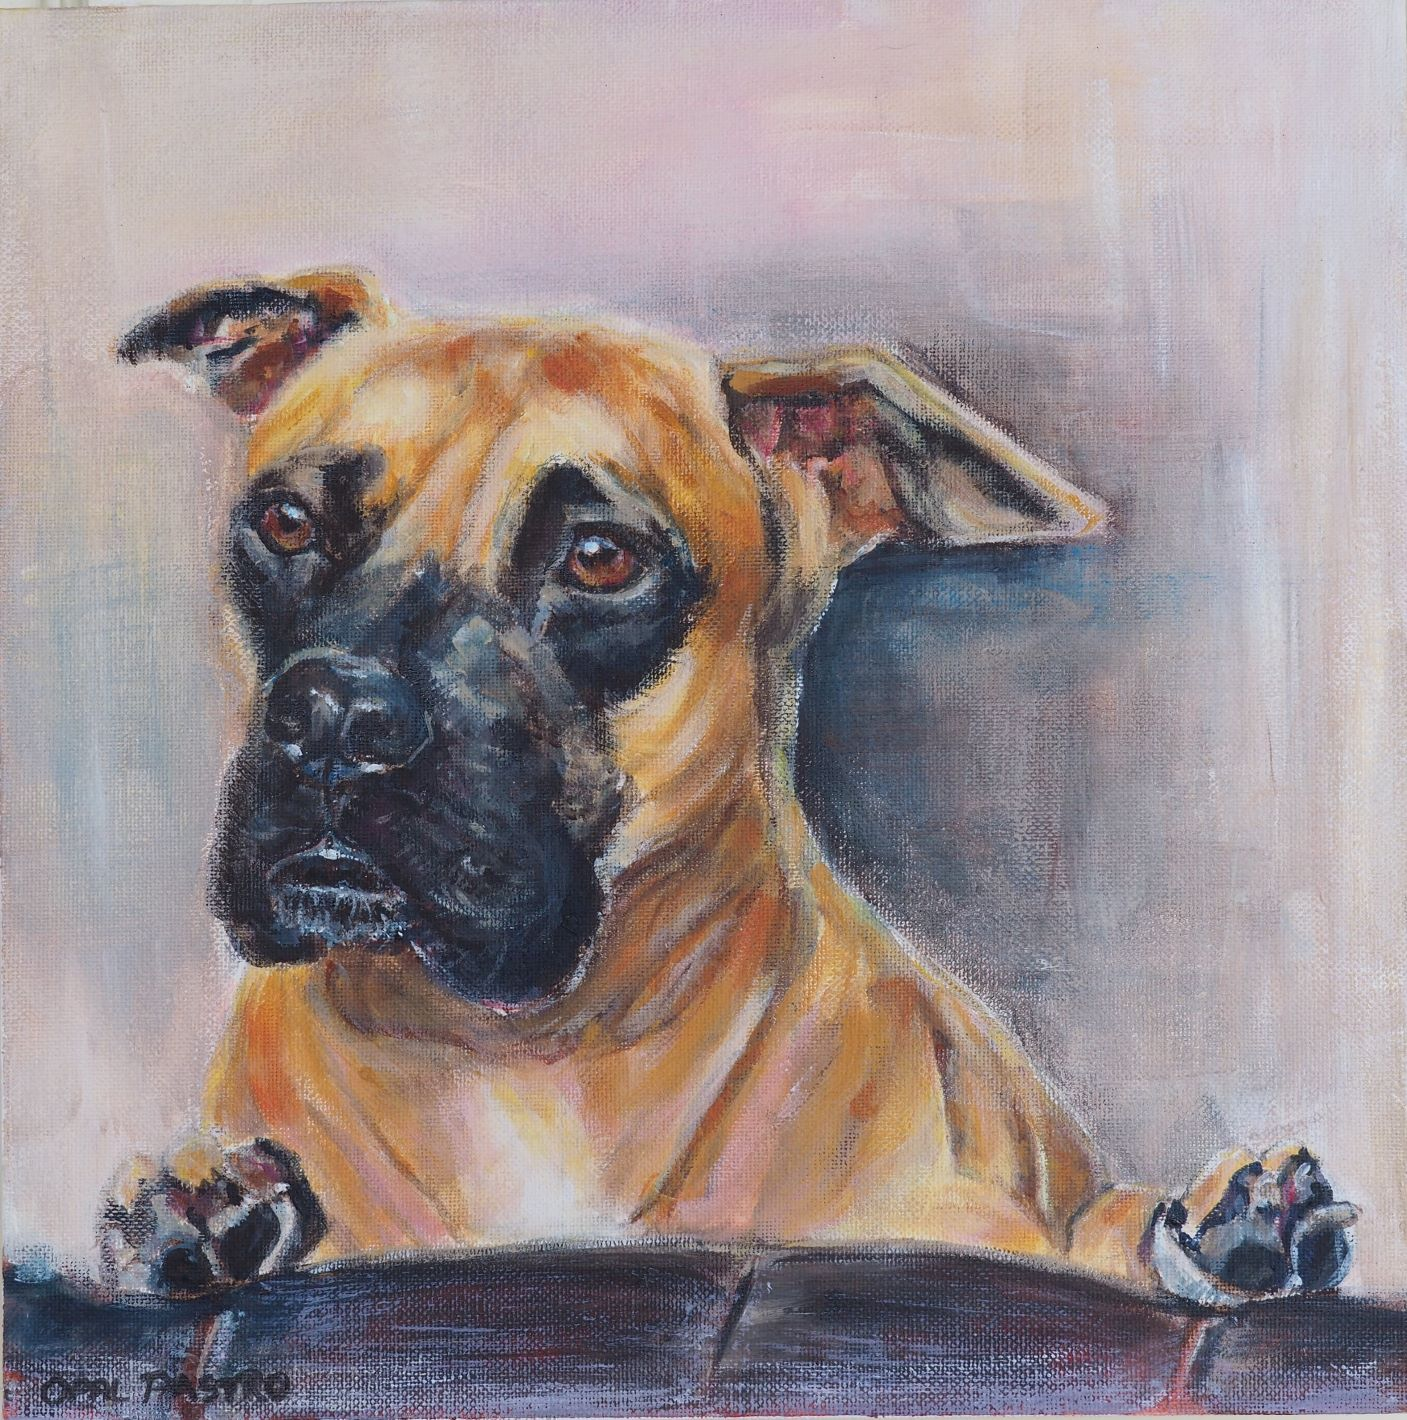 """""""This is a beautiful likeness of Bronco""""… - The eyes are exact - such an important window to the soul.Commissioned by Jamie for her sisterAcrylic on canvas12"""" x 12""""Texas, USA"""